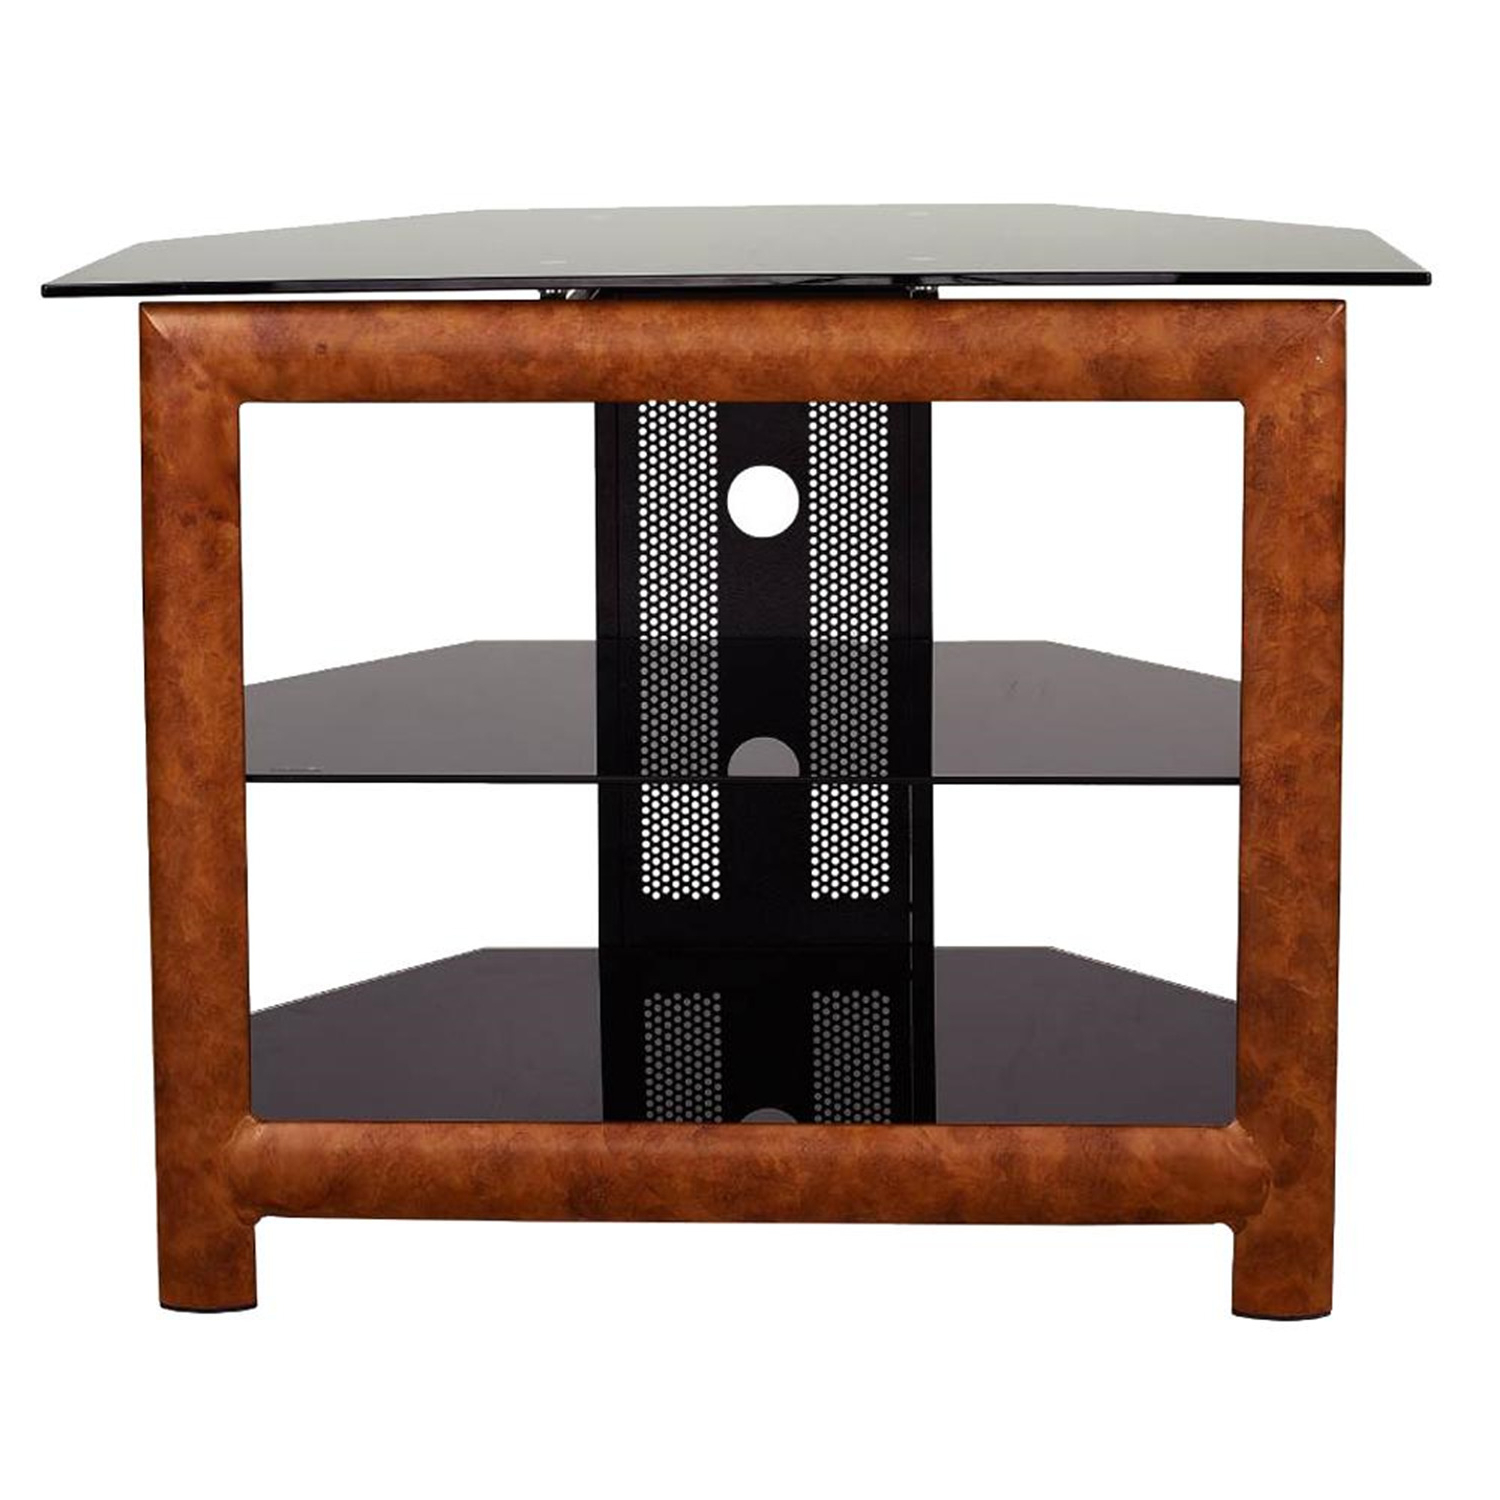 Furniture, Home Goods, Appliances, Athletic Gear, Fitness Regarding Conrad Metal/glass Corner Tv Stands (View 15 of 20)